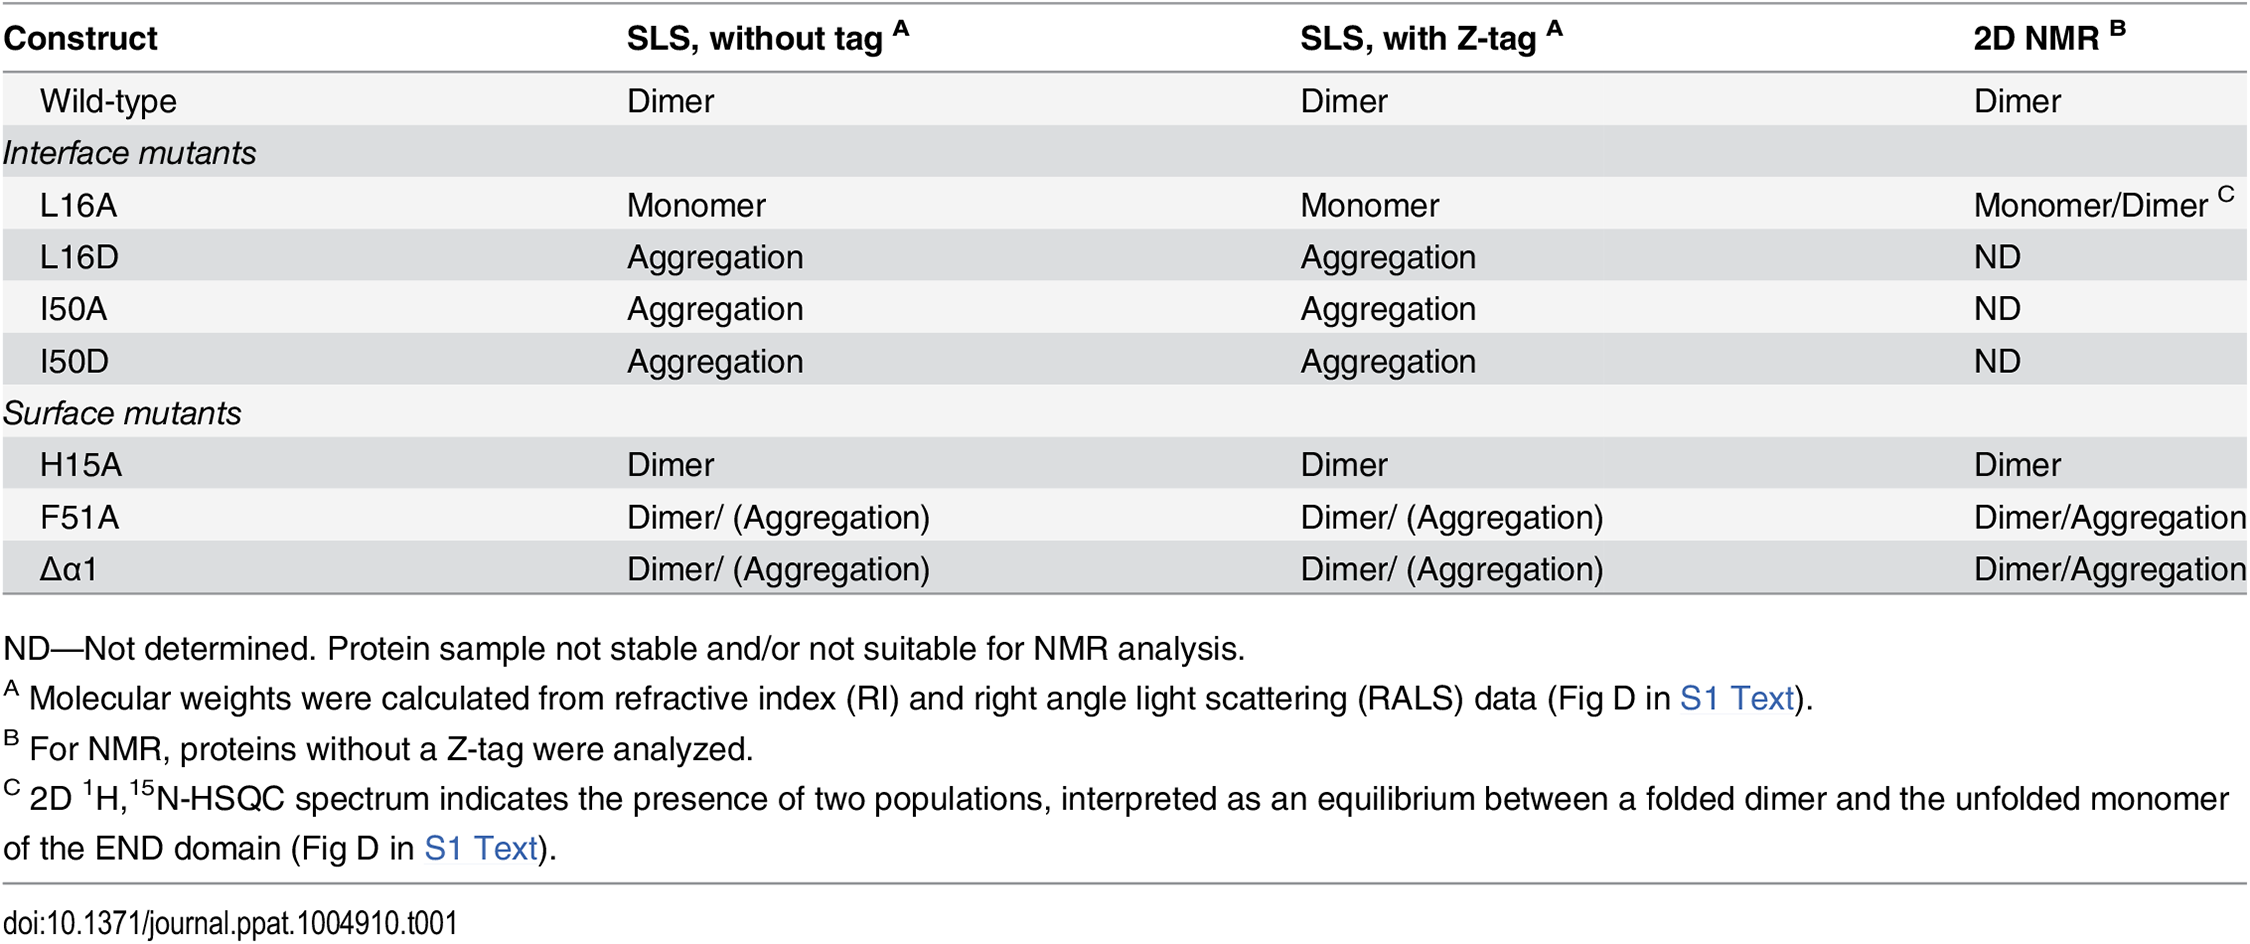 Dimerization analysis of wild-type and mutant END domains by SEC/SLS and NMR.